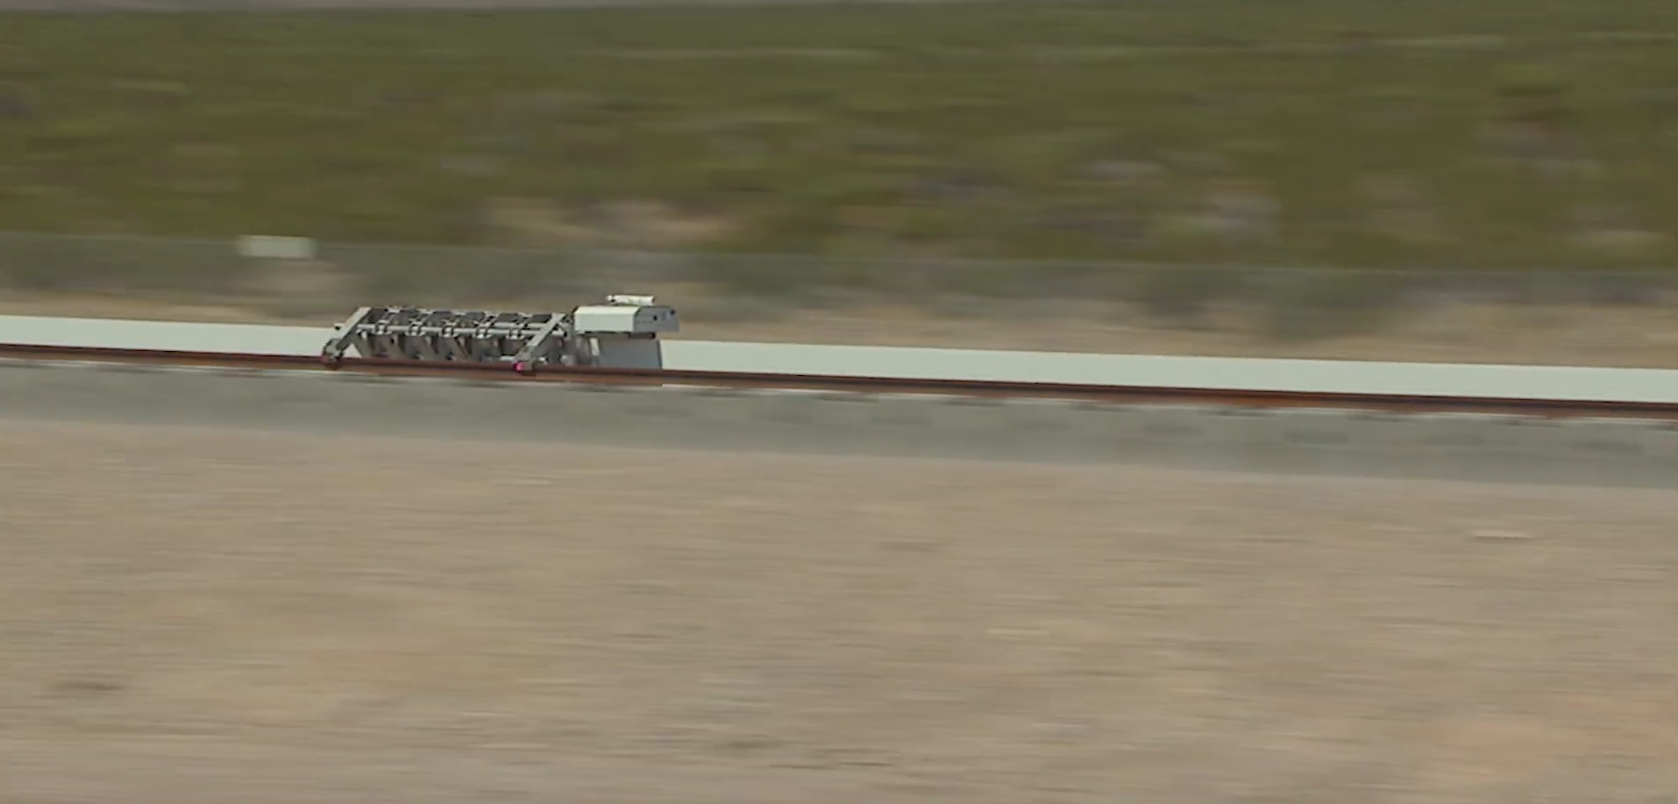 The Hyperloop One test vehicle flies down the tracks in the Nevada Desert.